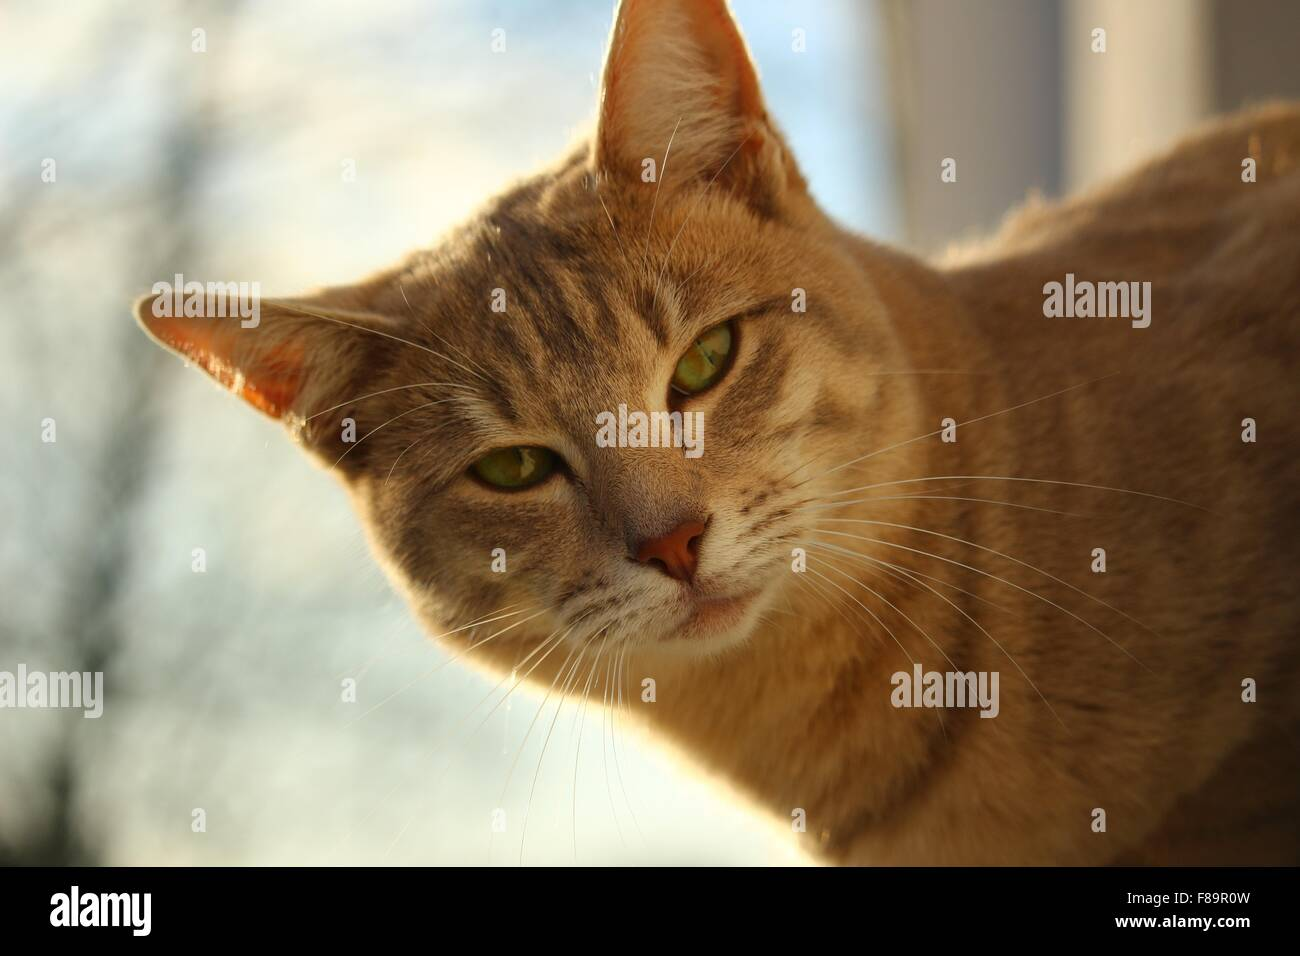 Close-up portrait of a ginger tabby cat outside - Stock Image